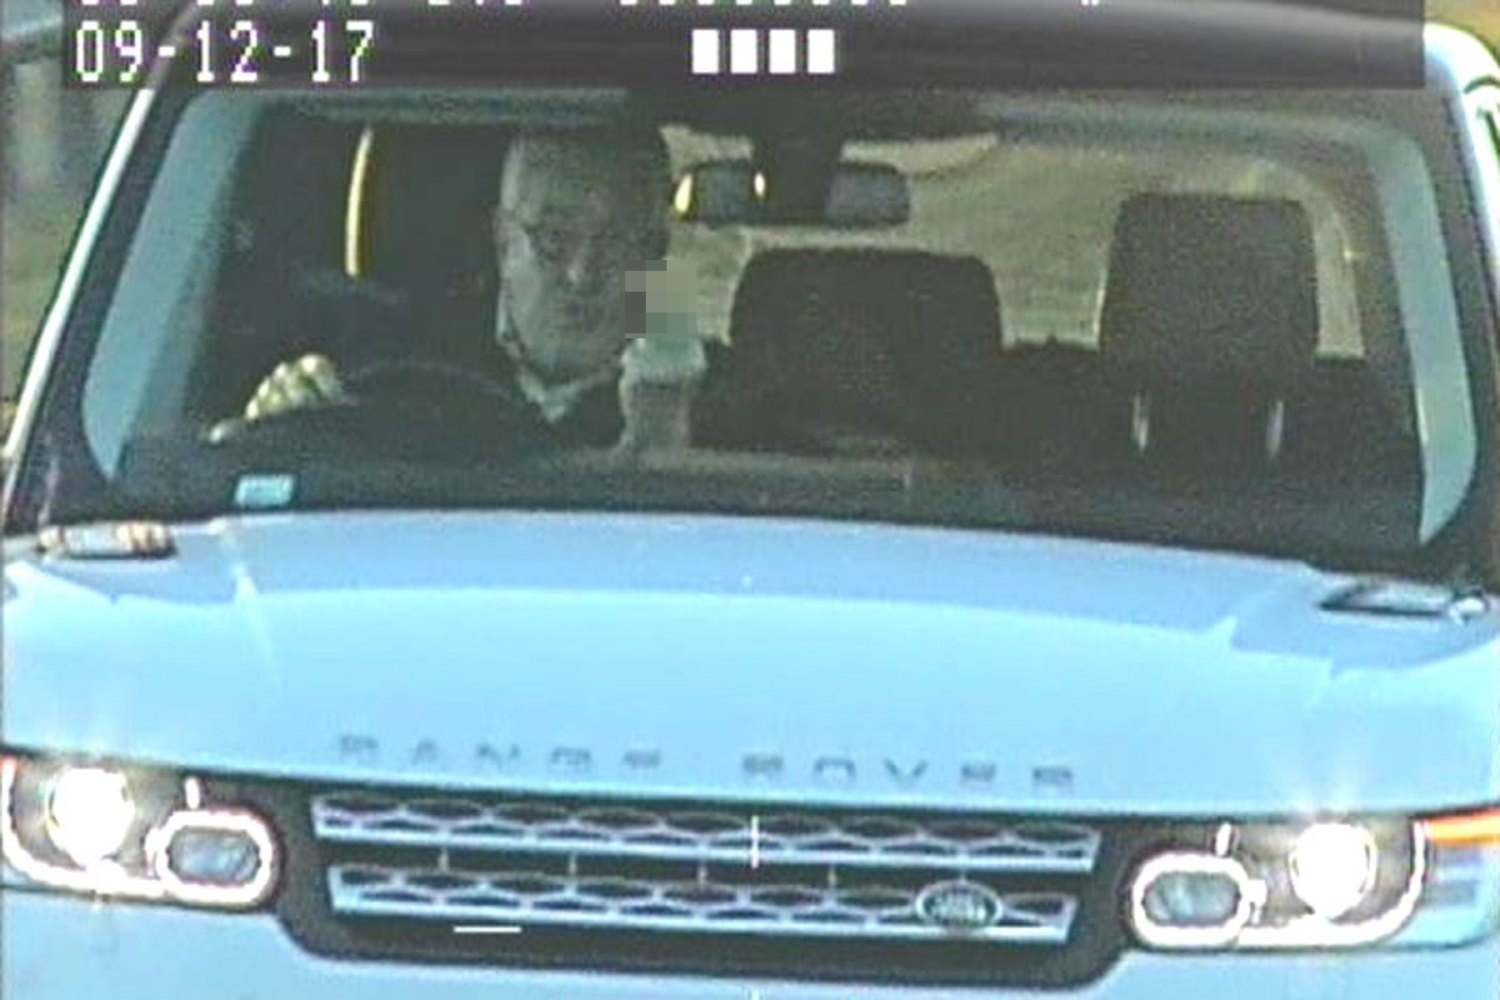 Range Rover driver jailed for giving police the finger